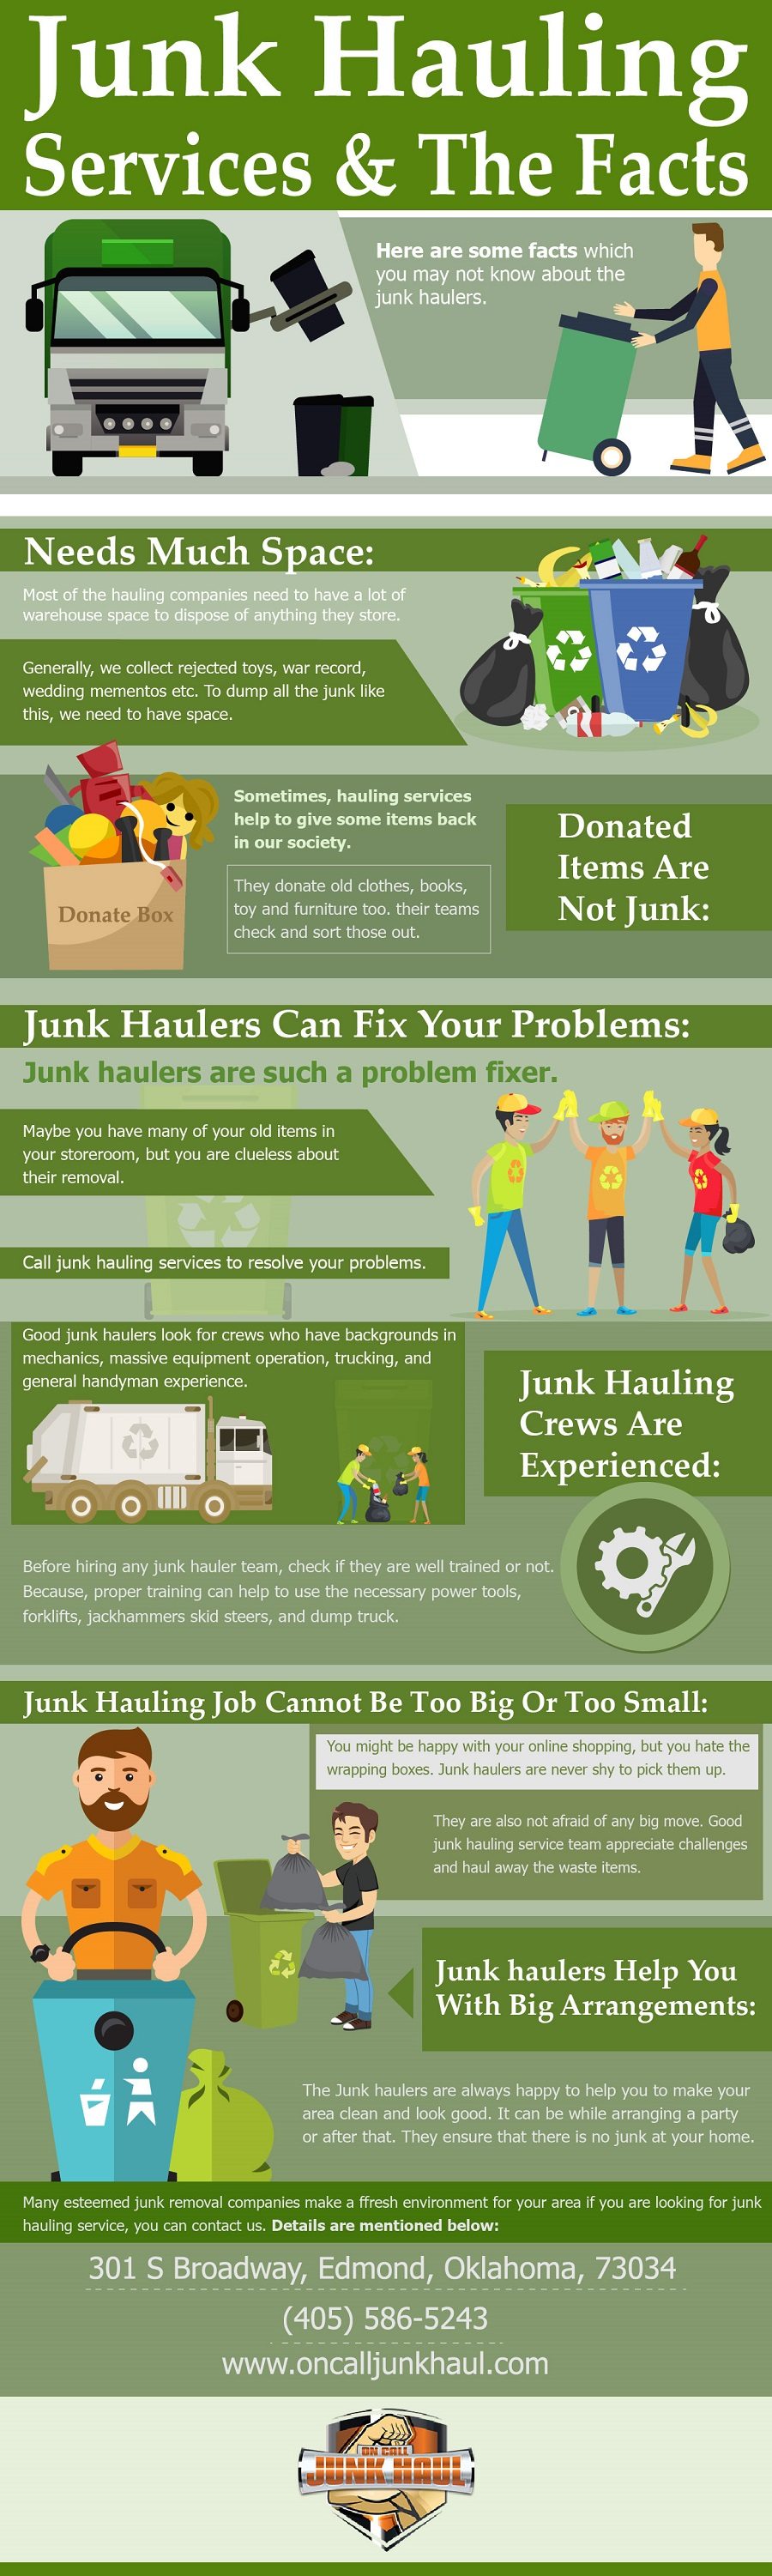 Junk Hauling Services & Facts